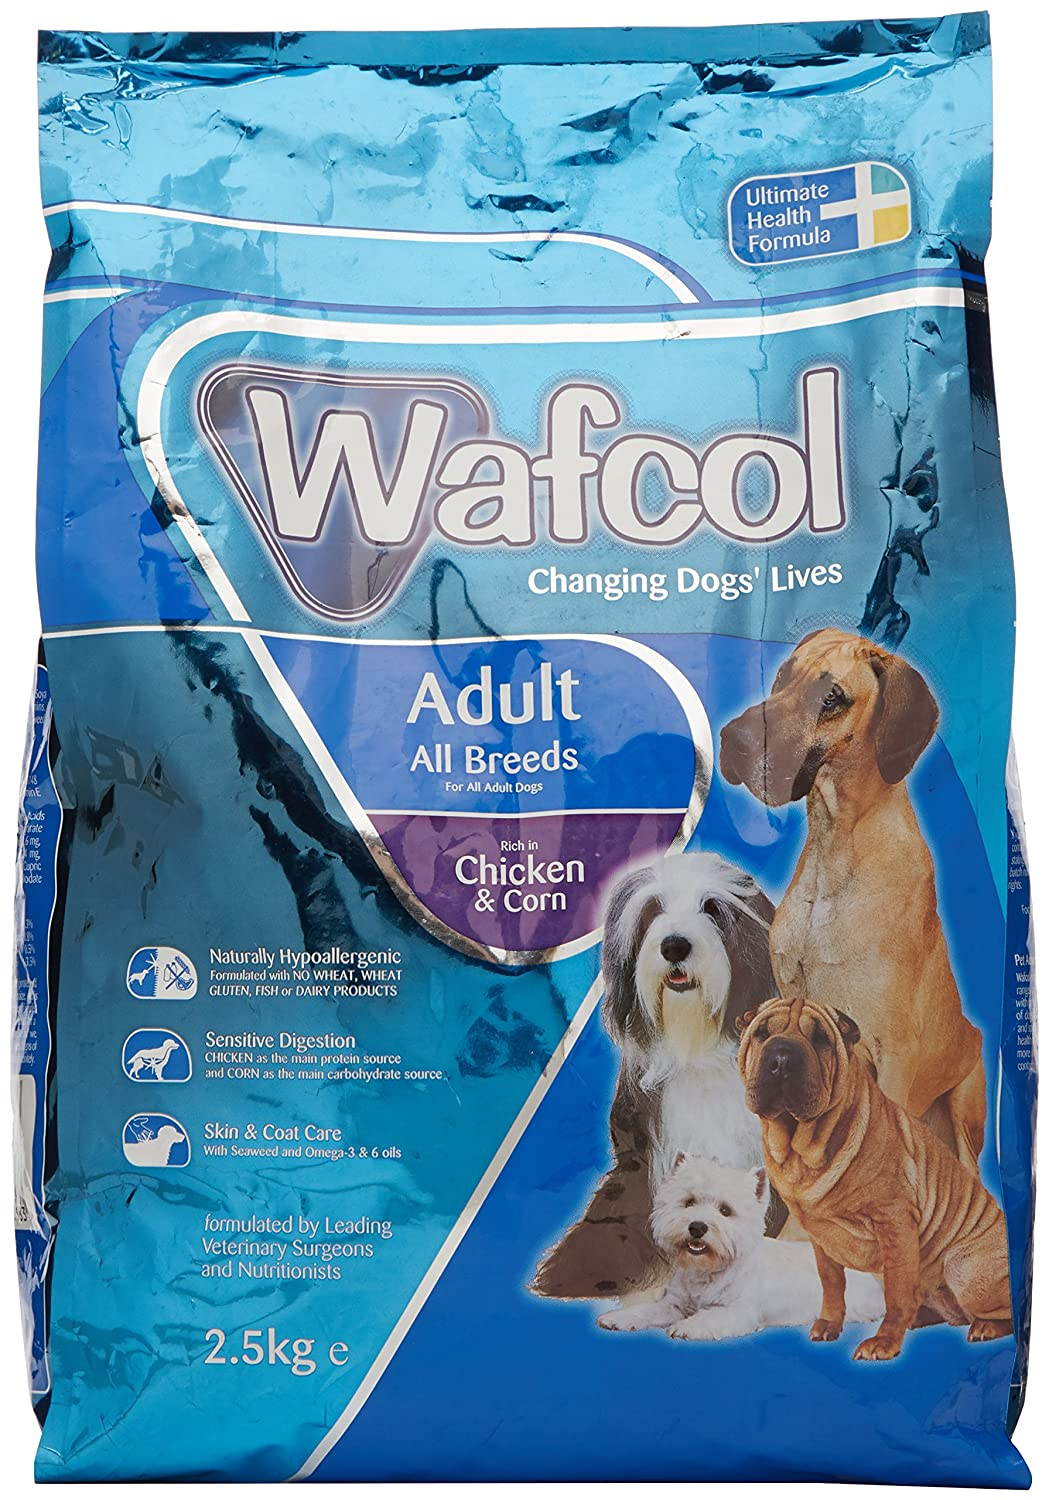 Wafcol Sensitive Dog Food Chicken & Corn for All Adult Breeds, 12 kg ARMBN 03068